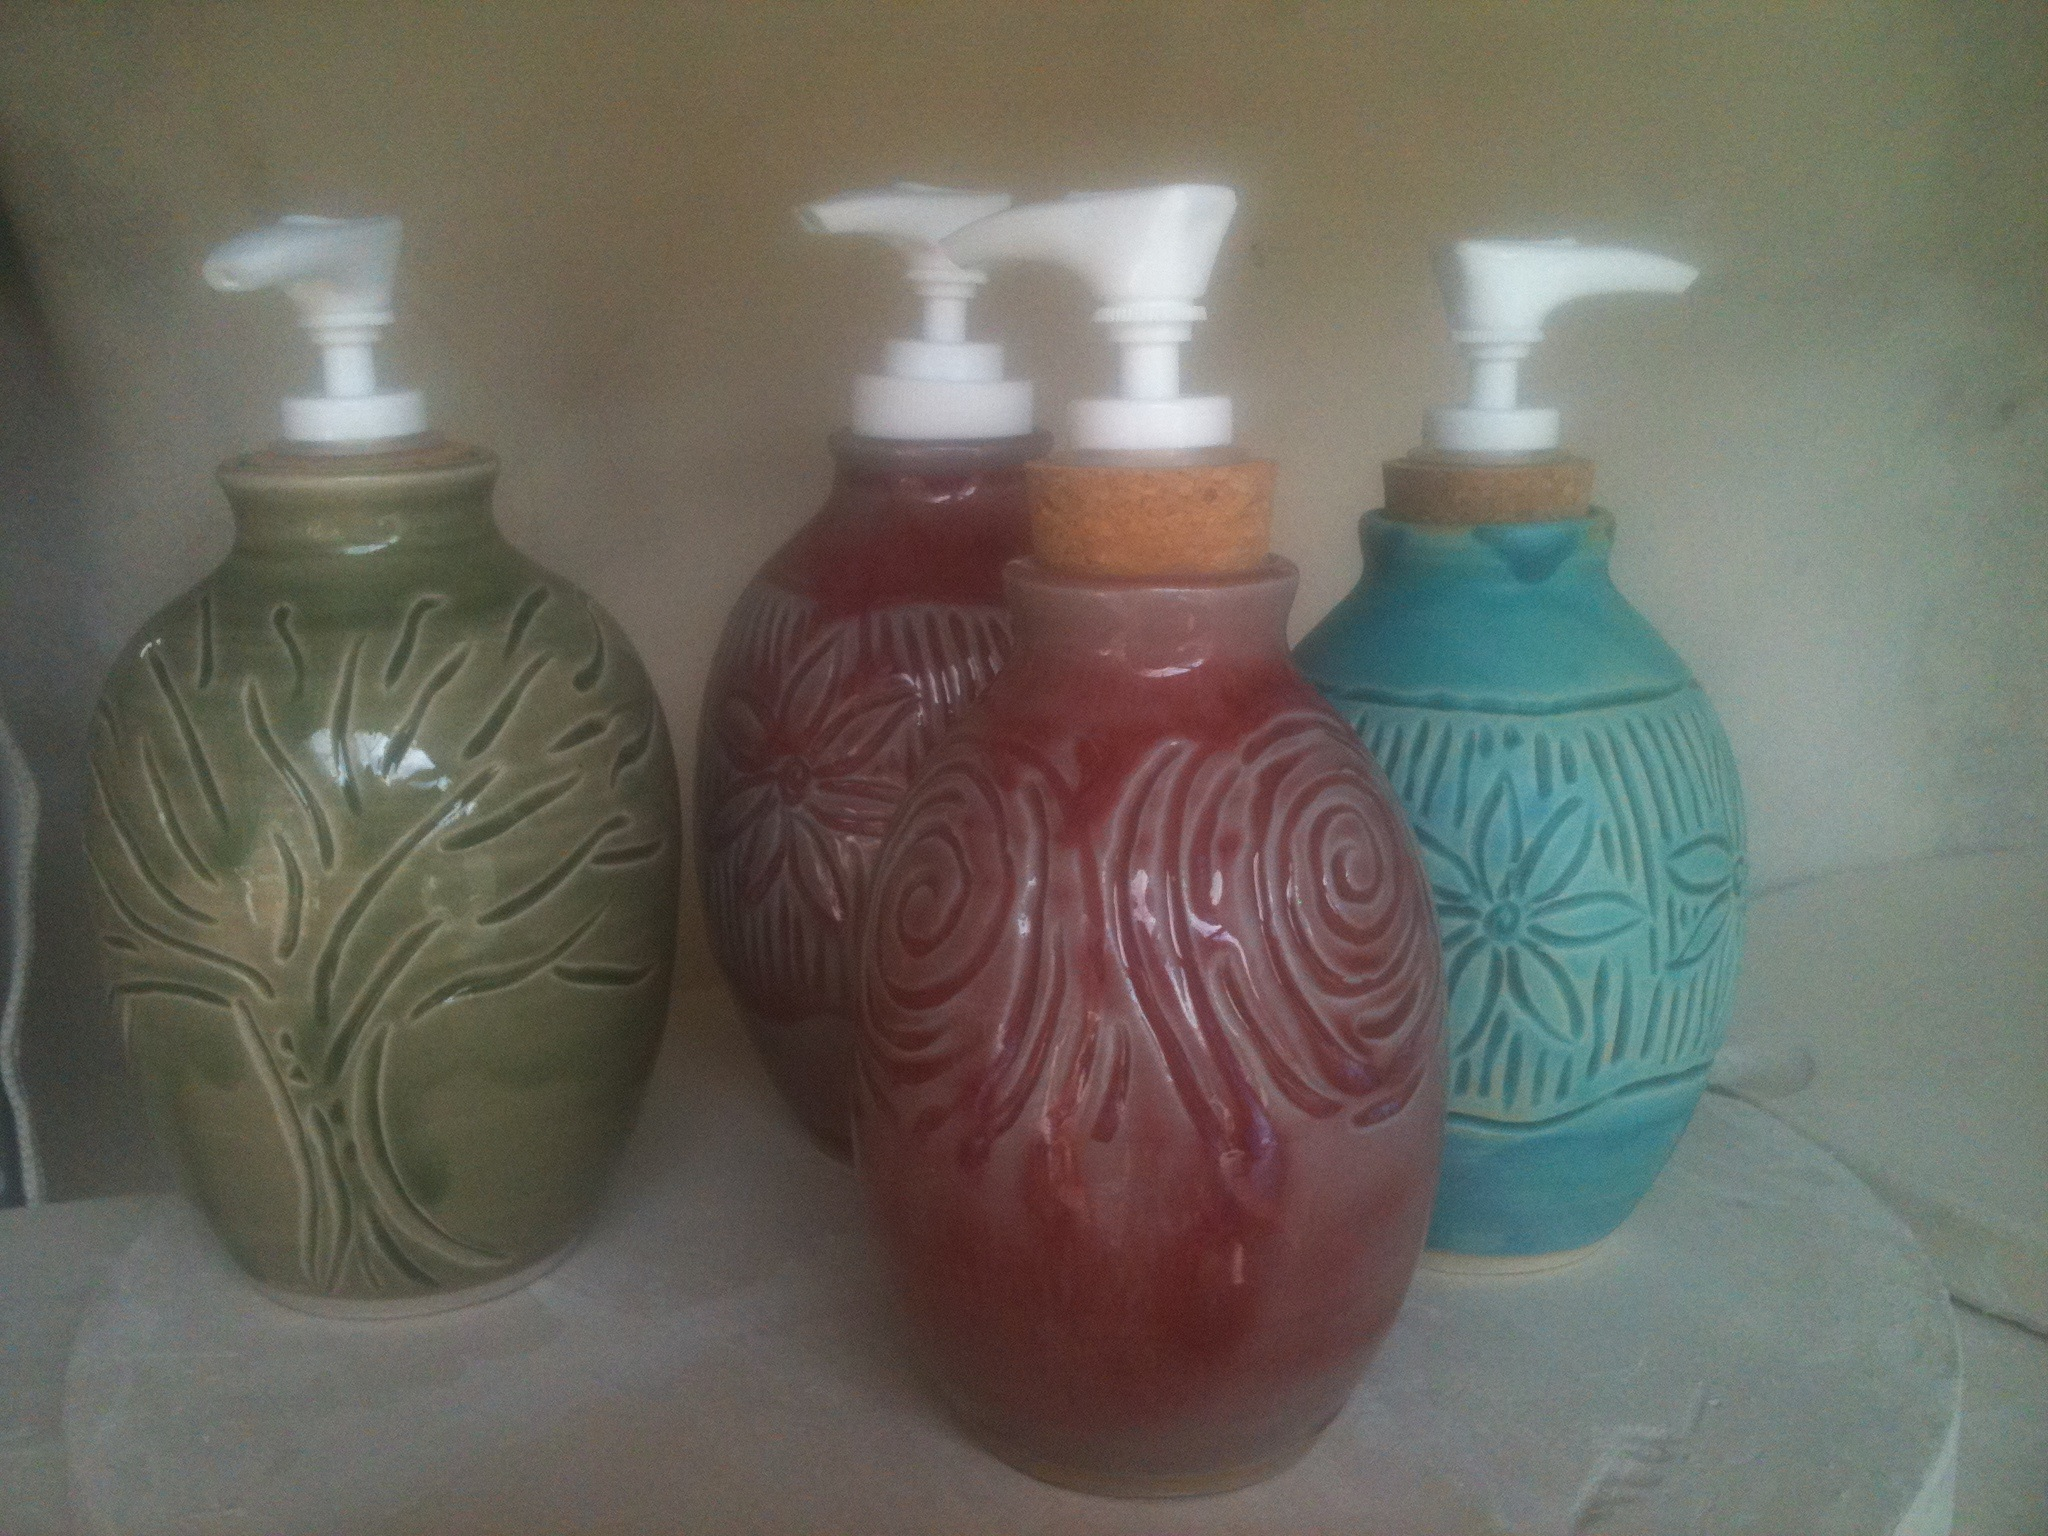 Carved lotion/soap dispensers